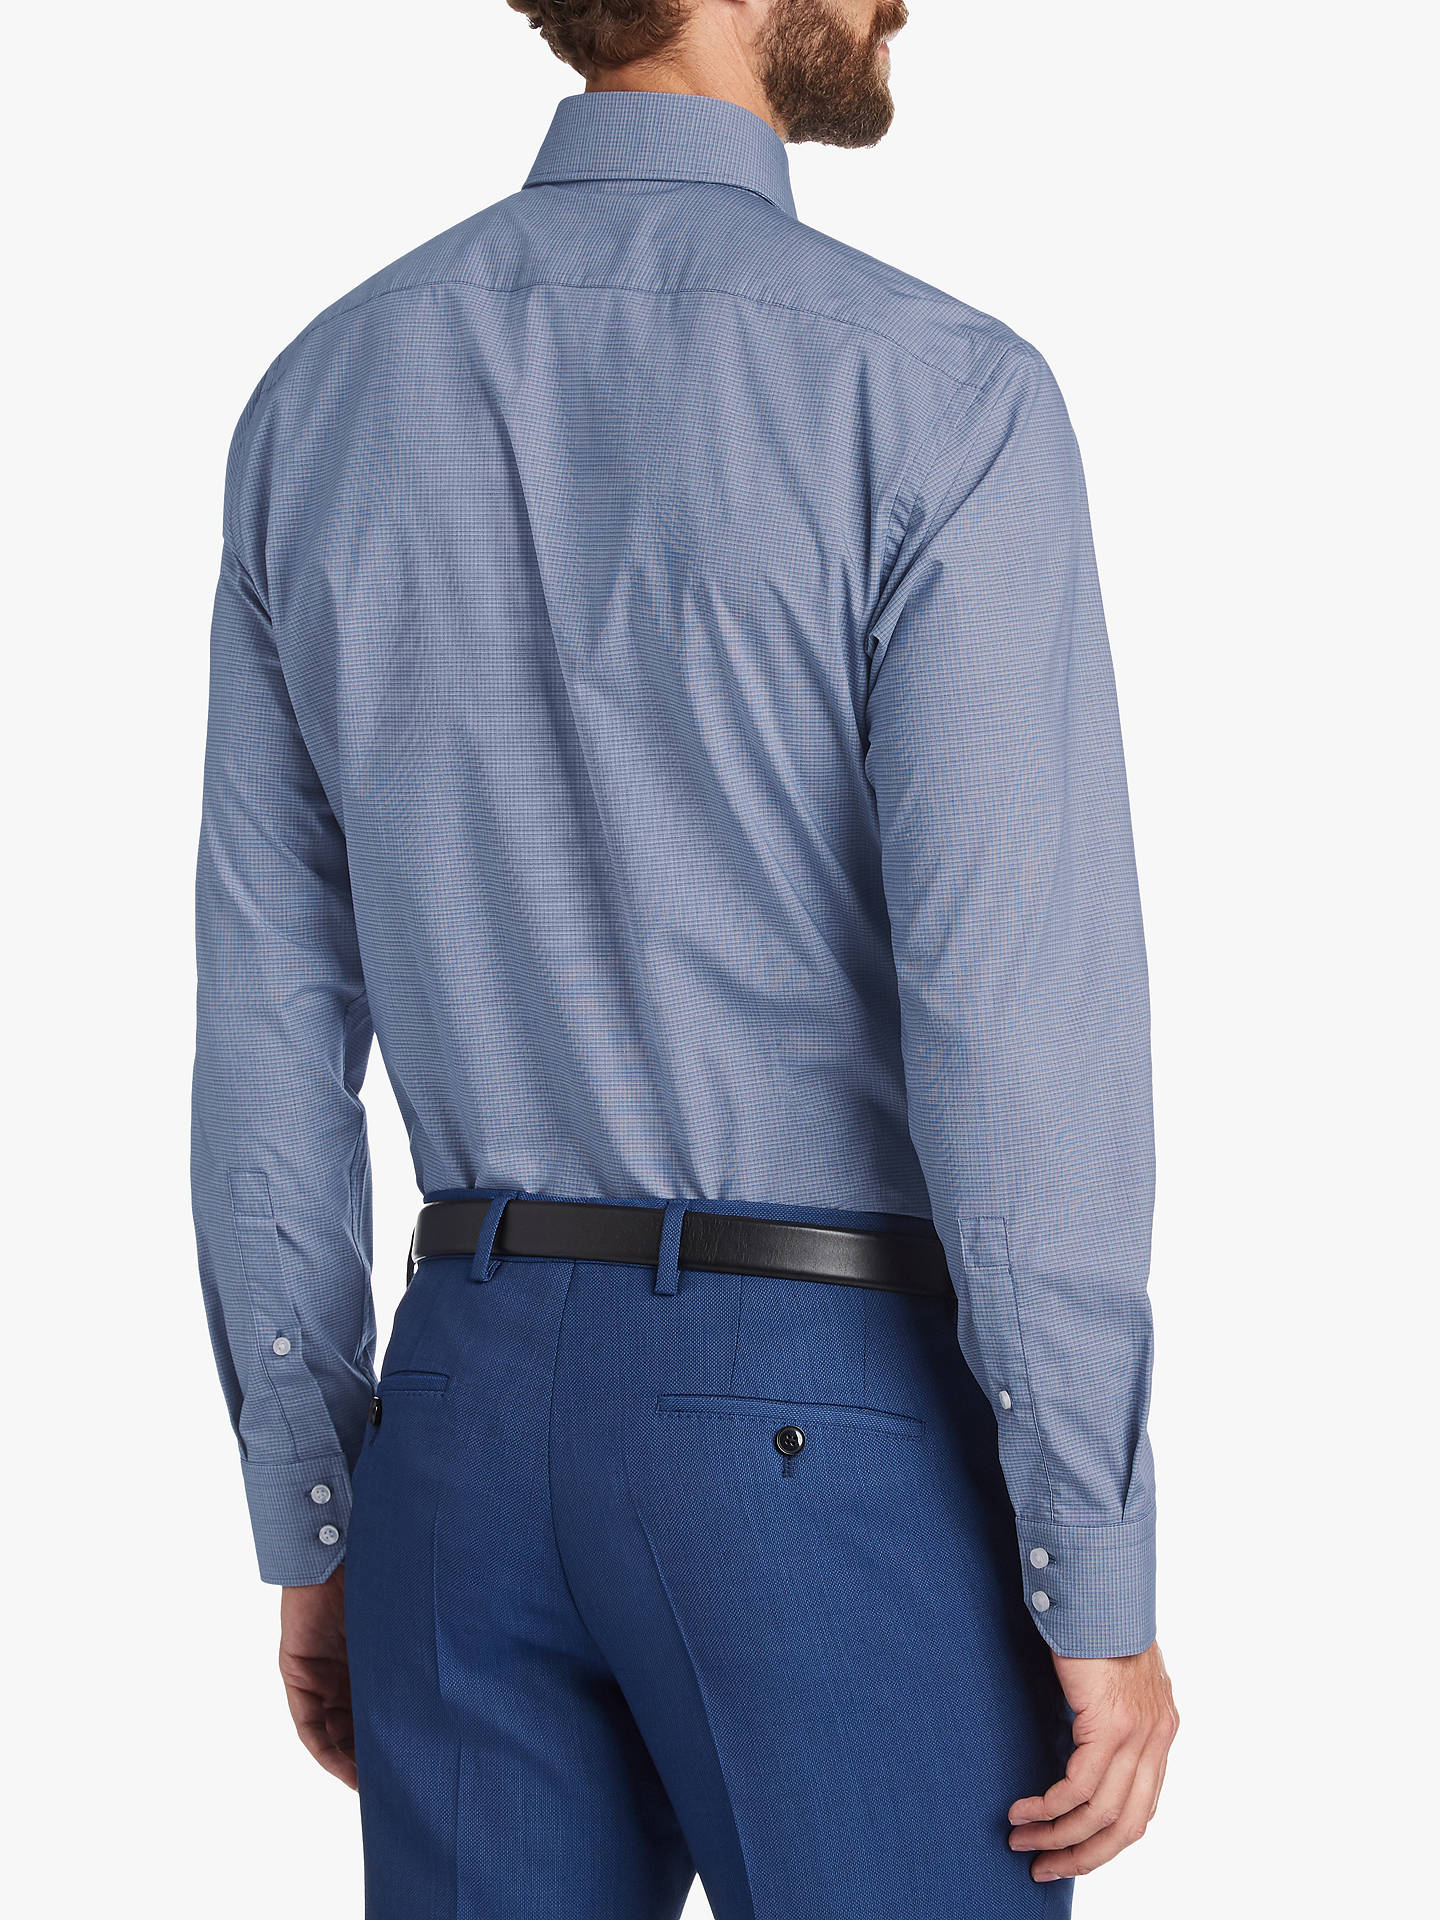 11af1463e ... Buy HUGO by Hugo Boss Veraldi Textured Regular Fit Shirt, Navy, 15  Online at ...